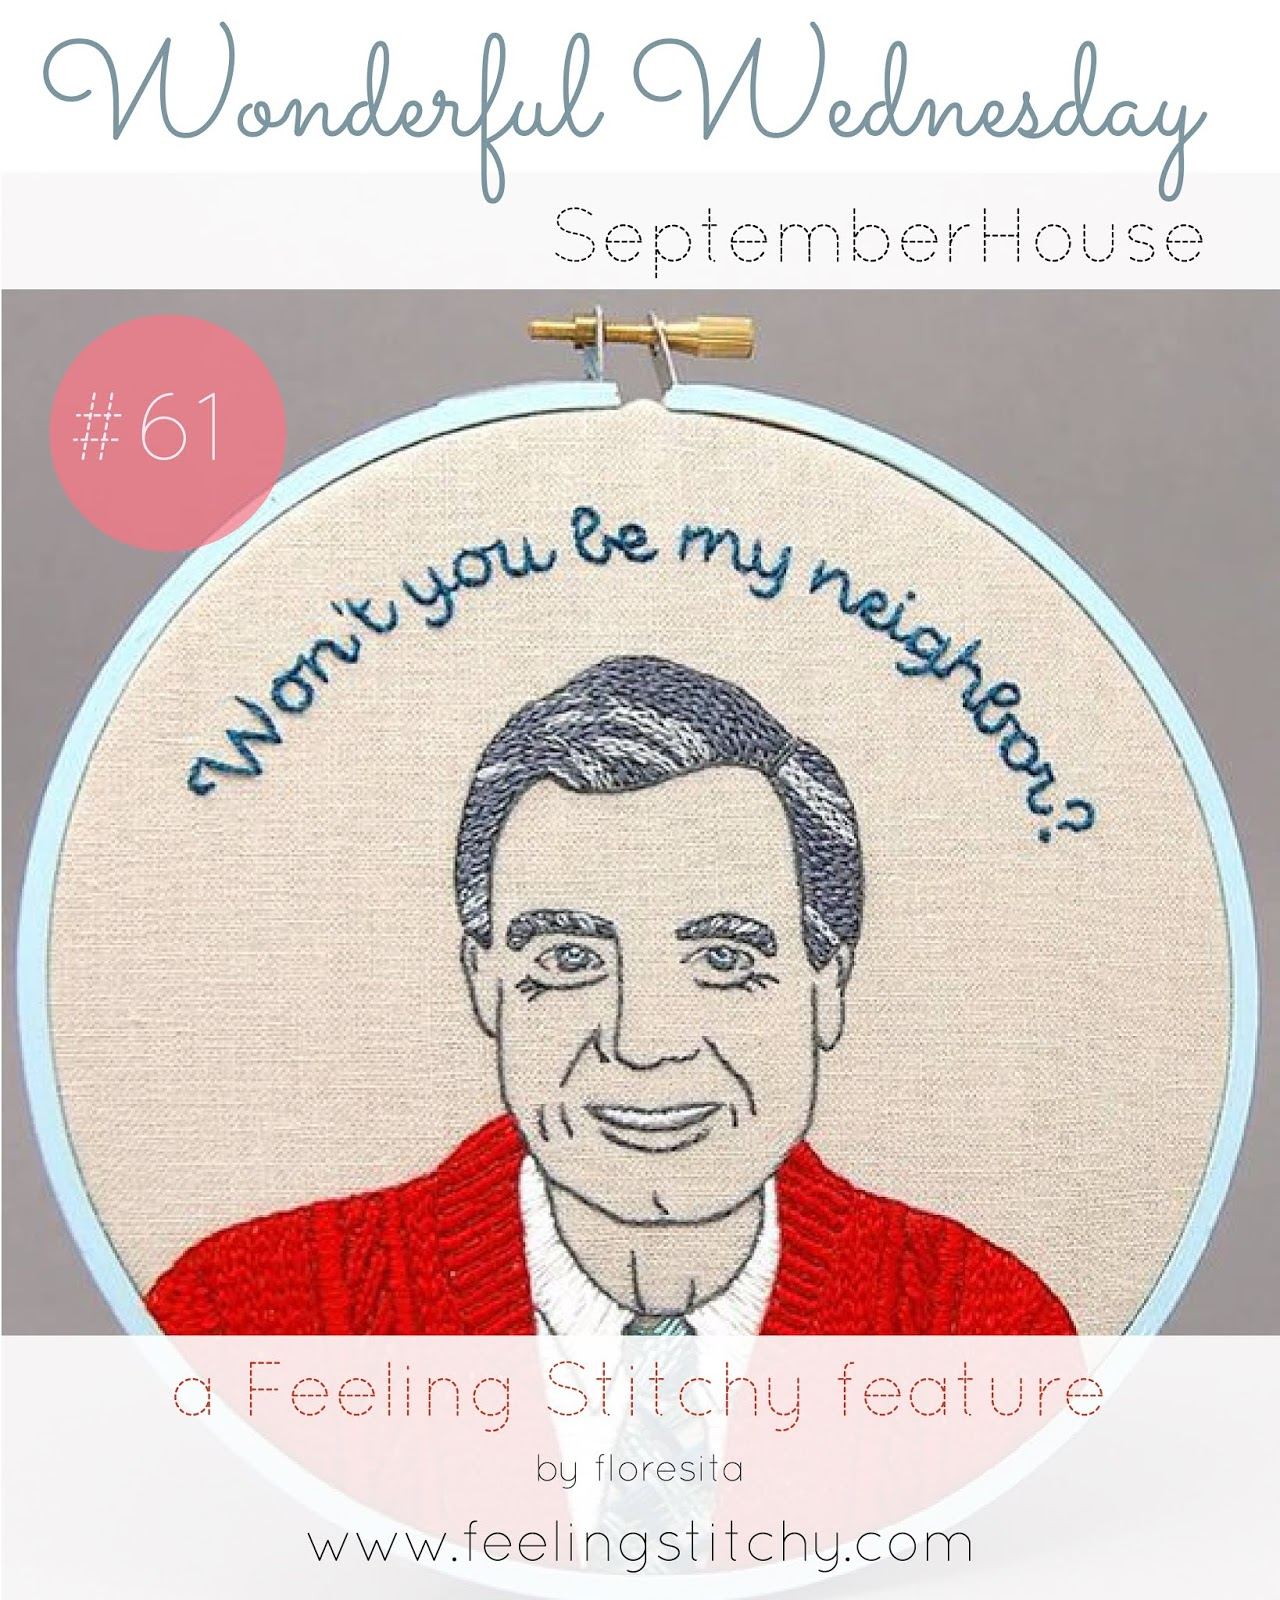 Wonderful Wednesday 61 Free Mr. Rogers pattern by SeptemberHouse as featured on Feeling Stitchy by floresita